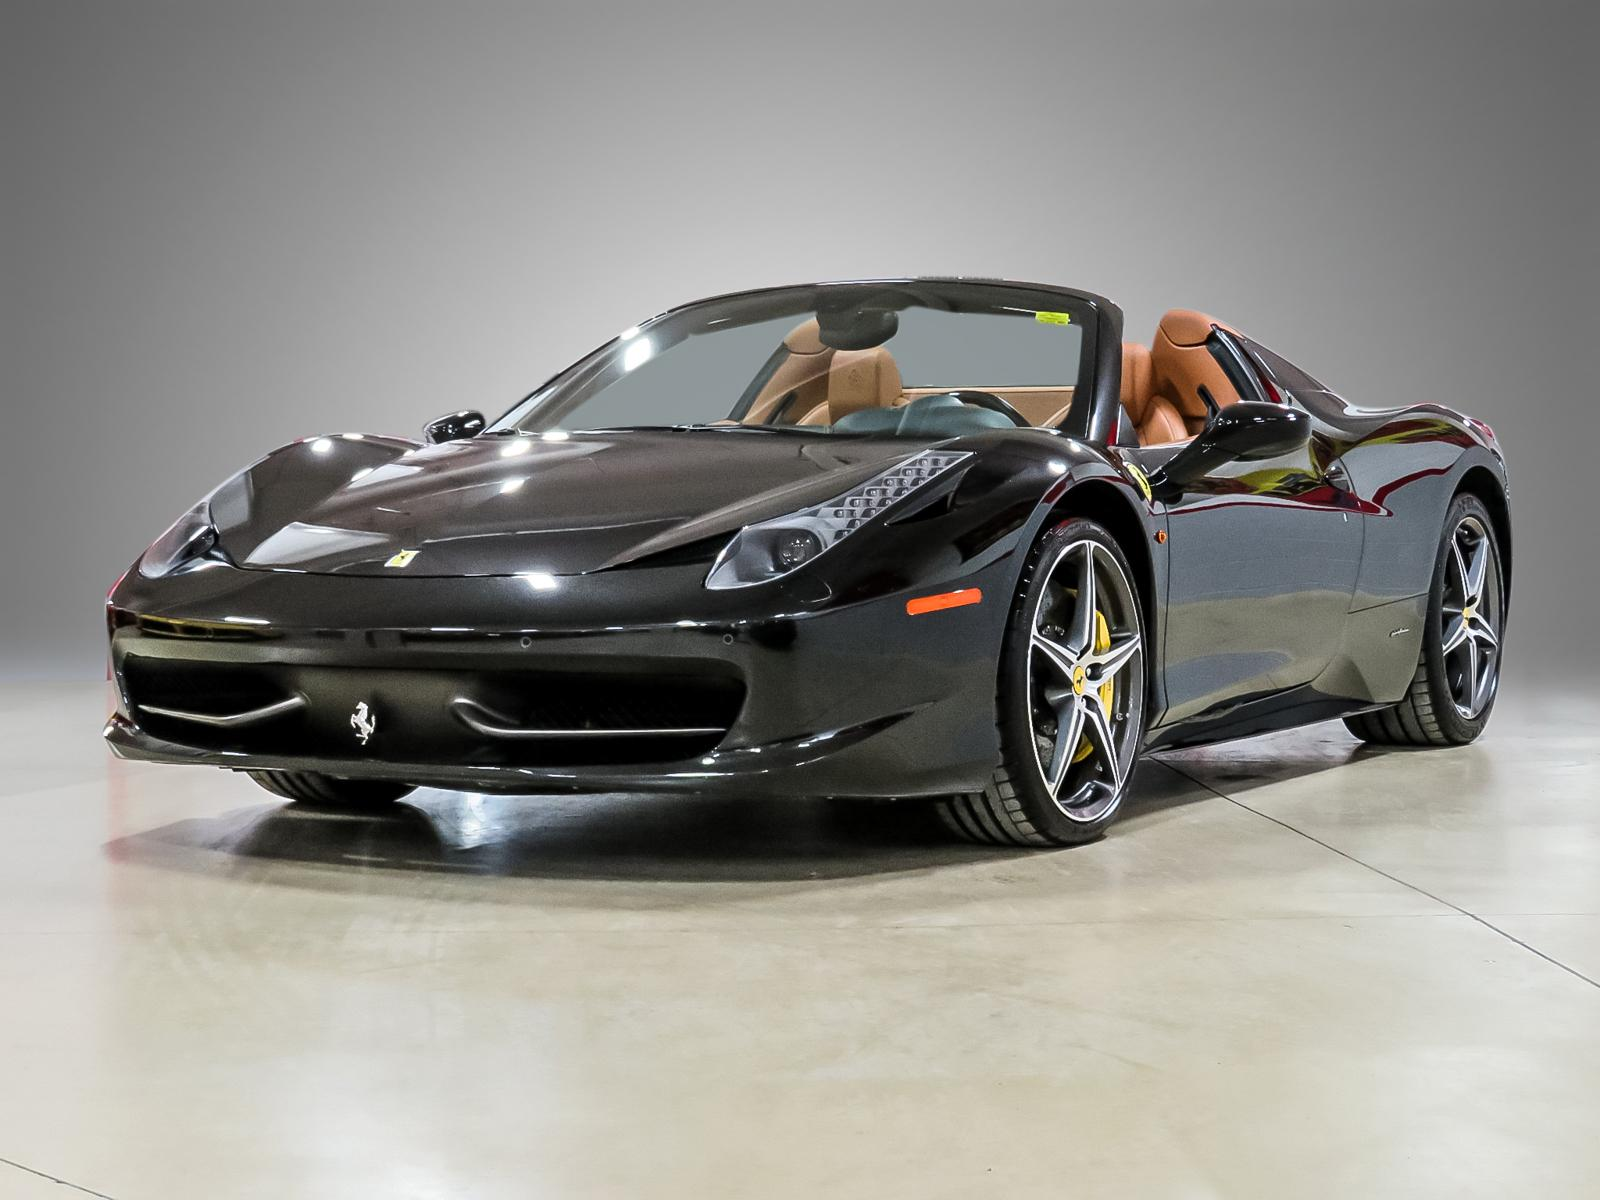 hid italia singapore abs d used cars ab for ferrari caarly search buy large car in ud smt sale